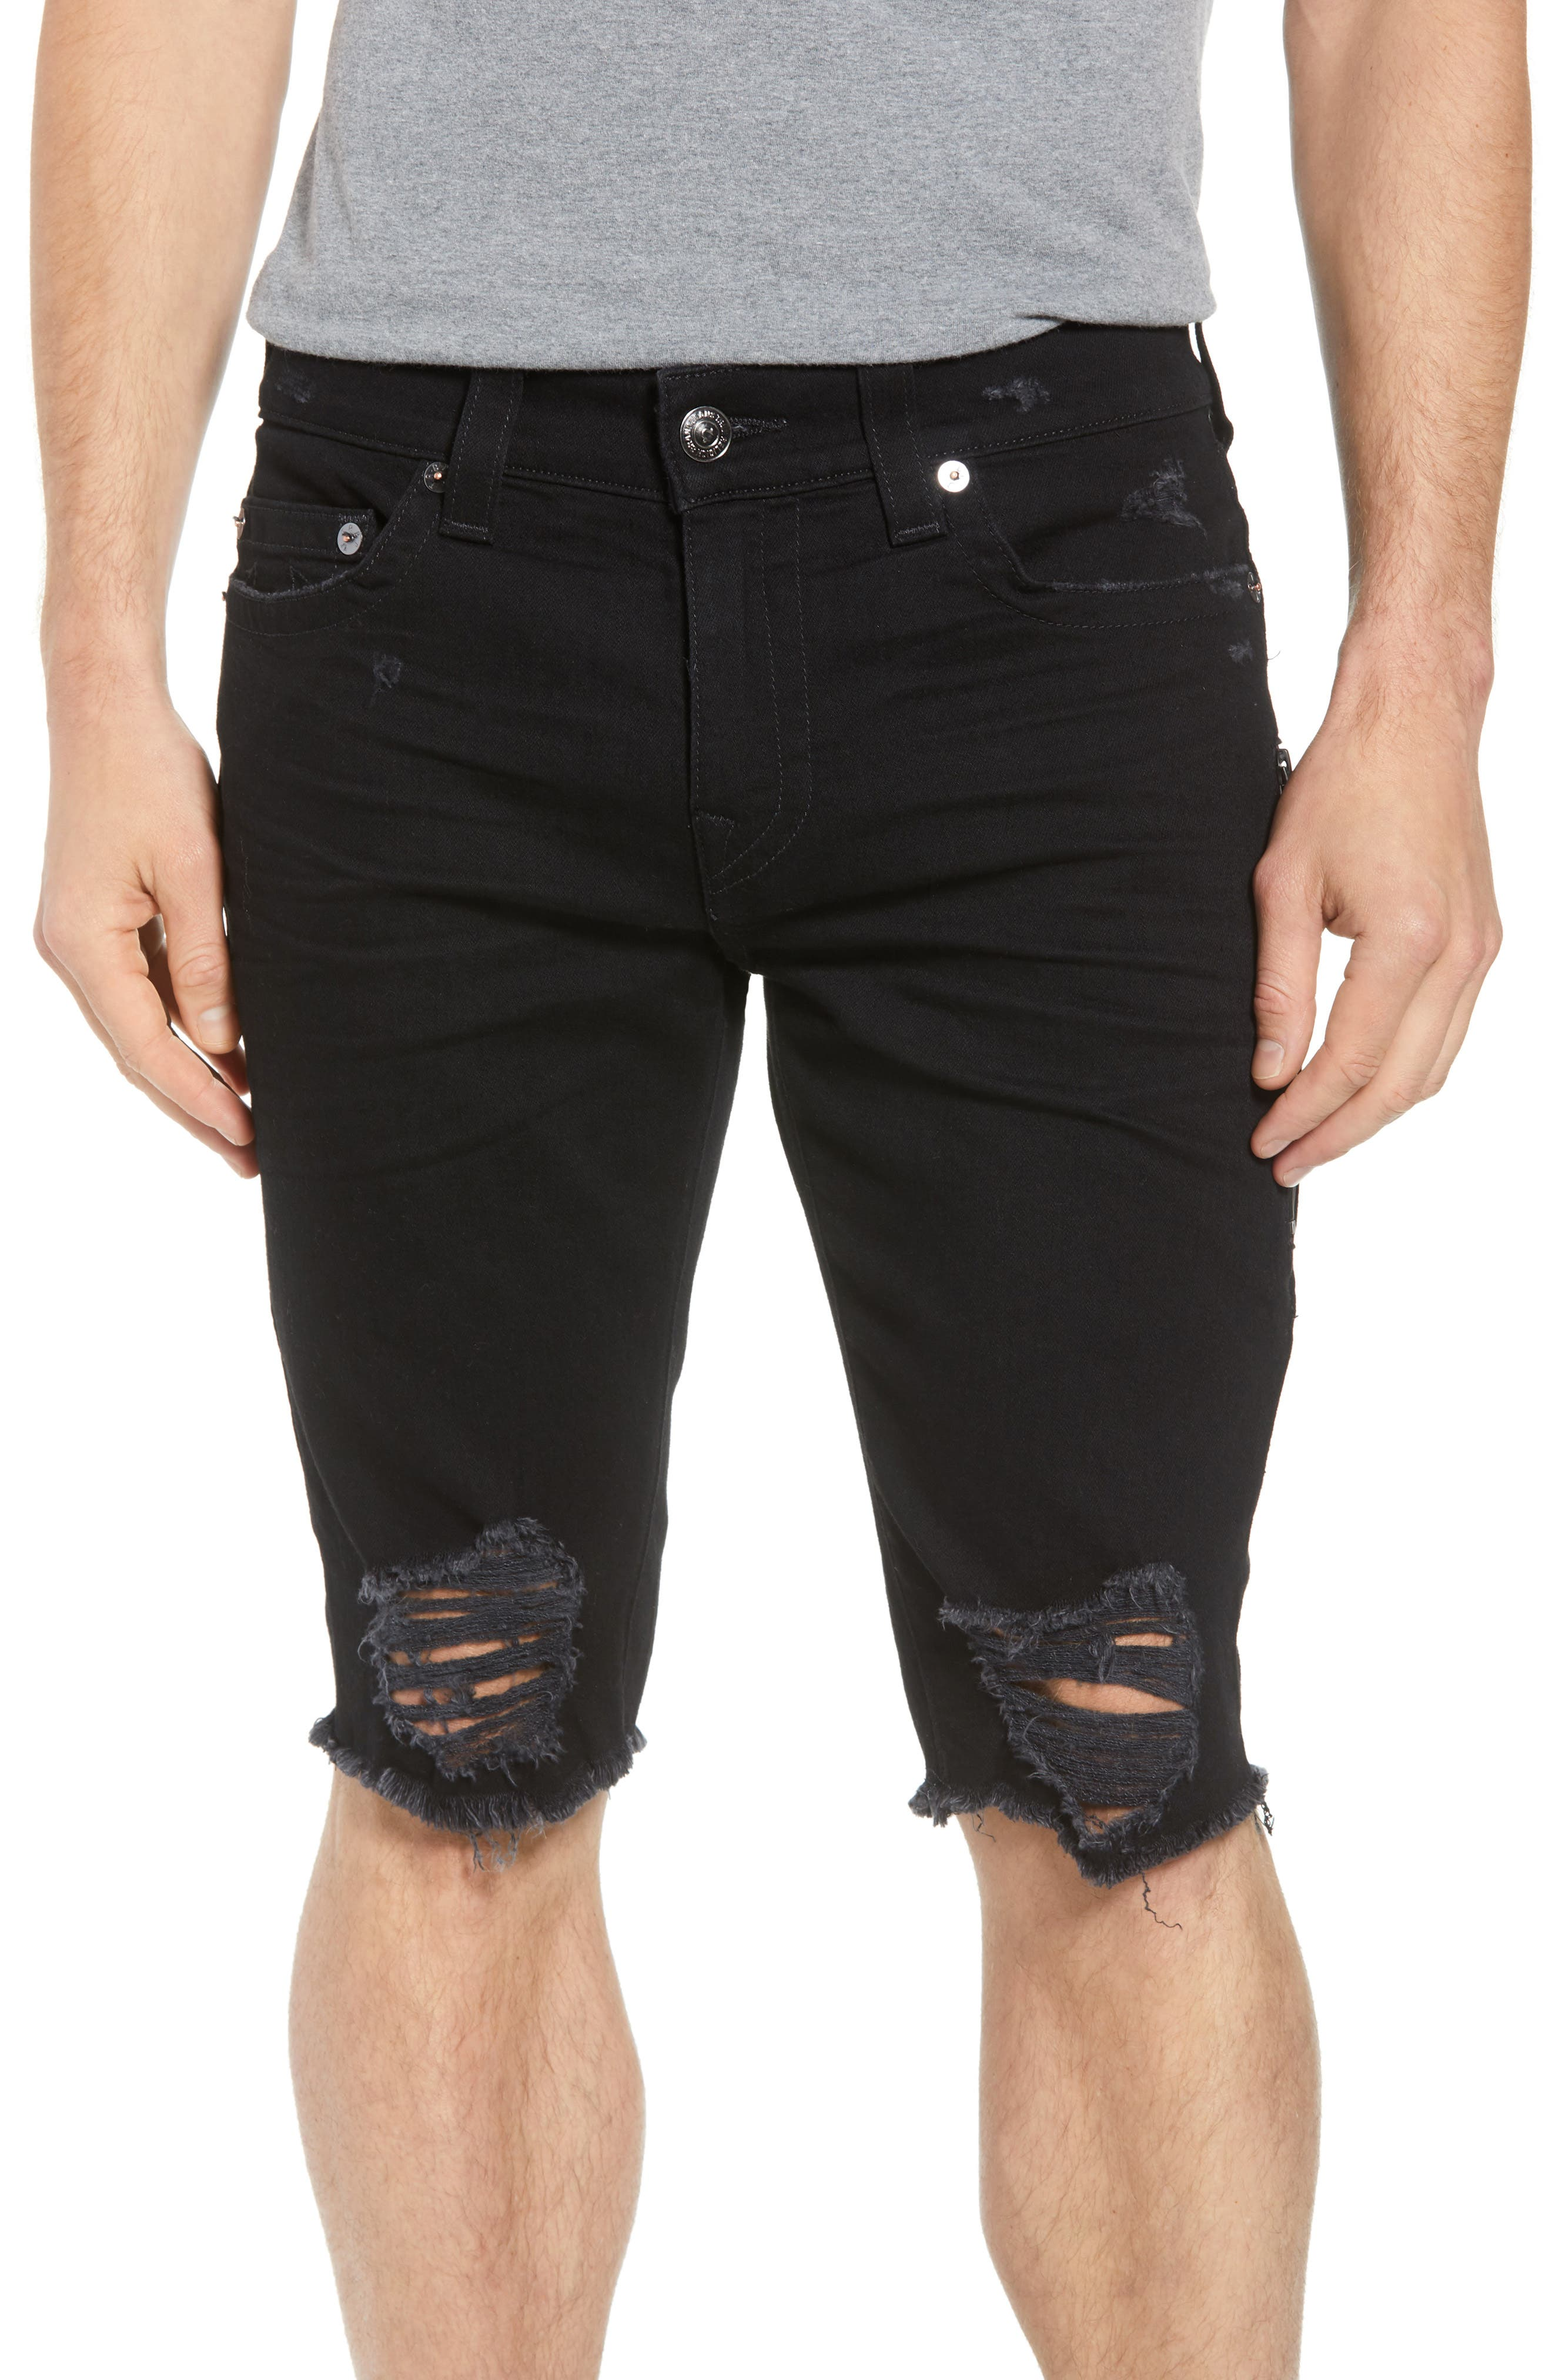 Ricky Relaxed Fit Shorts,                             Main thumbnail 1, color,                             CHALKBOARD